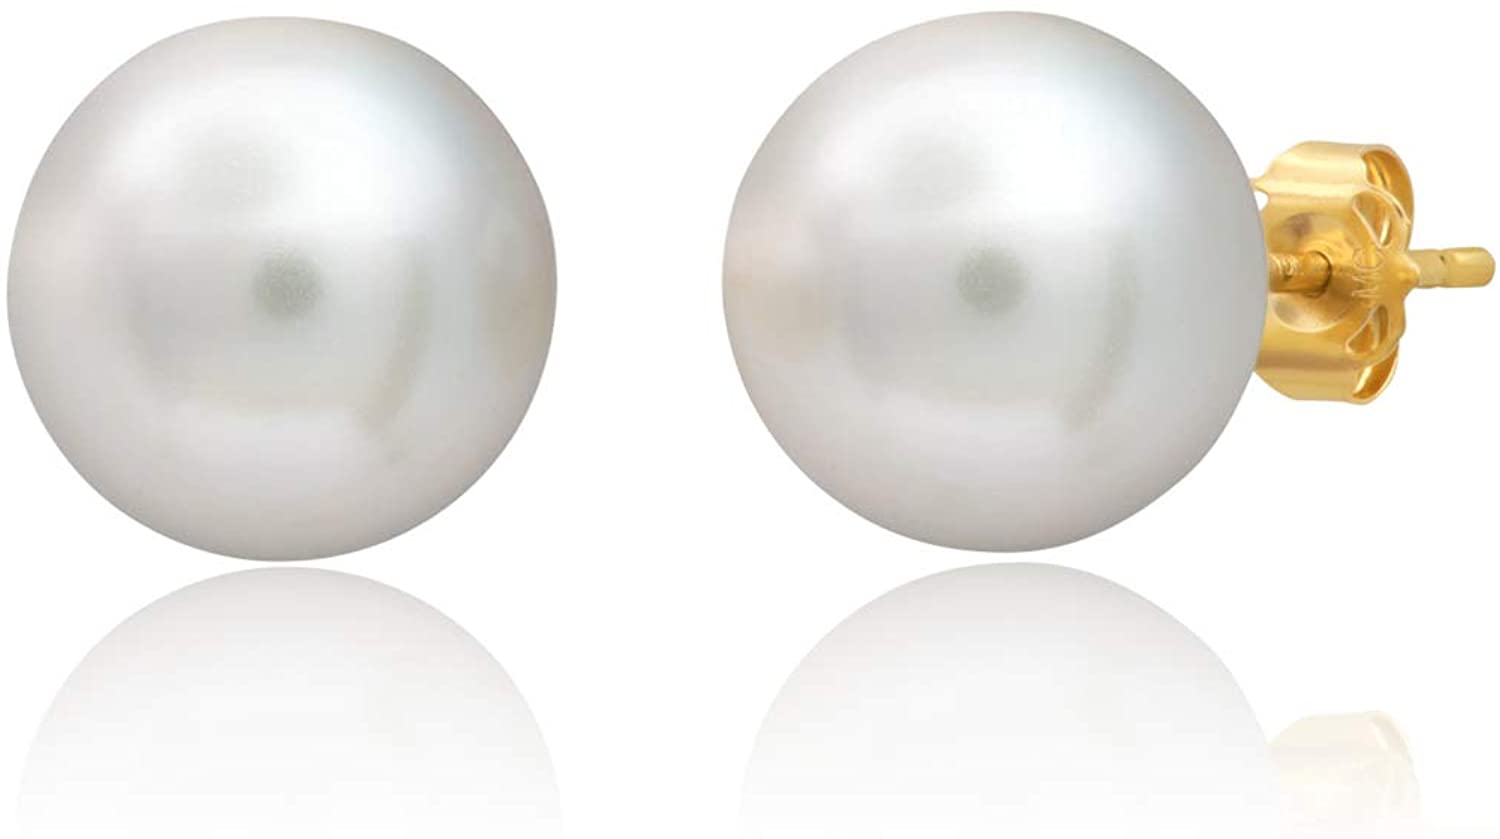 18k Solid Gold ROUND Stud Earrings with Genuine Swarovski Crystal Pearls | 5MM to 10MM | With Gift Box